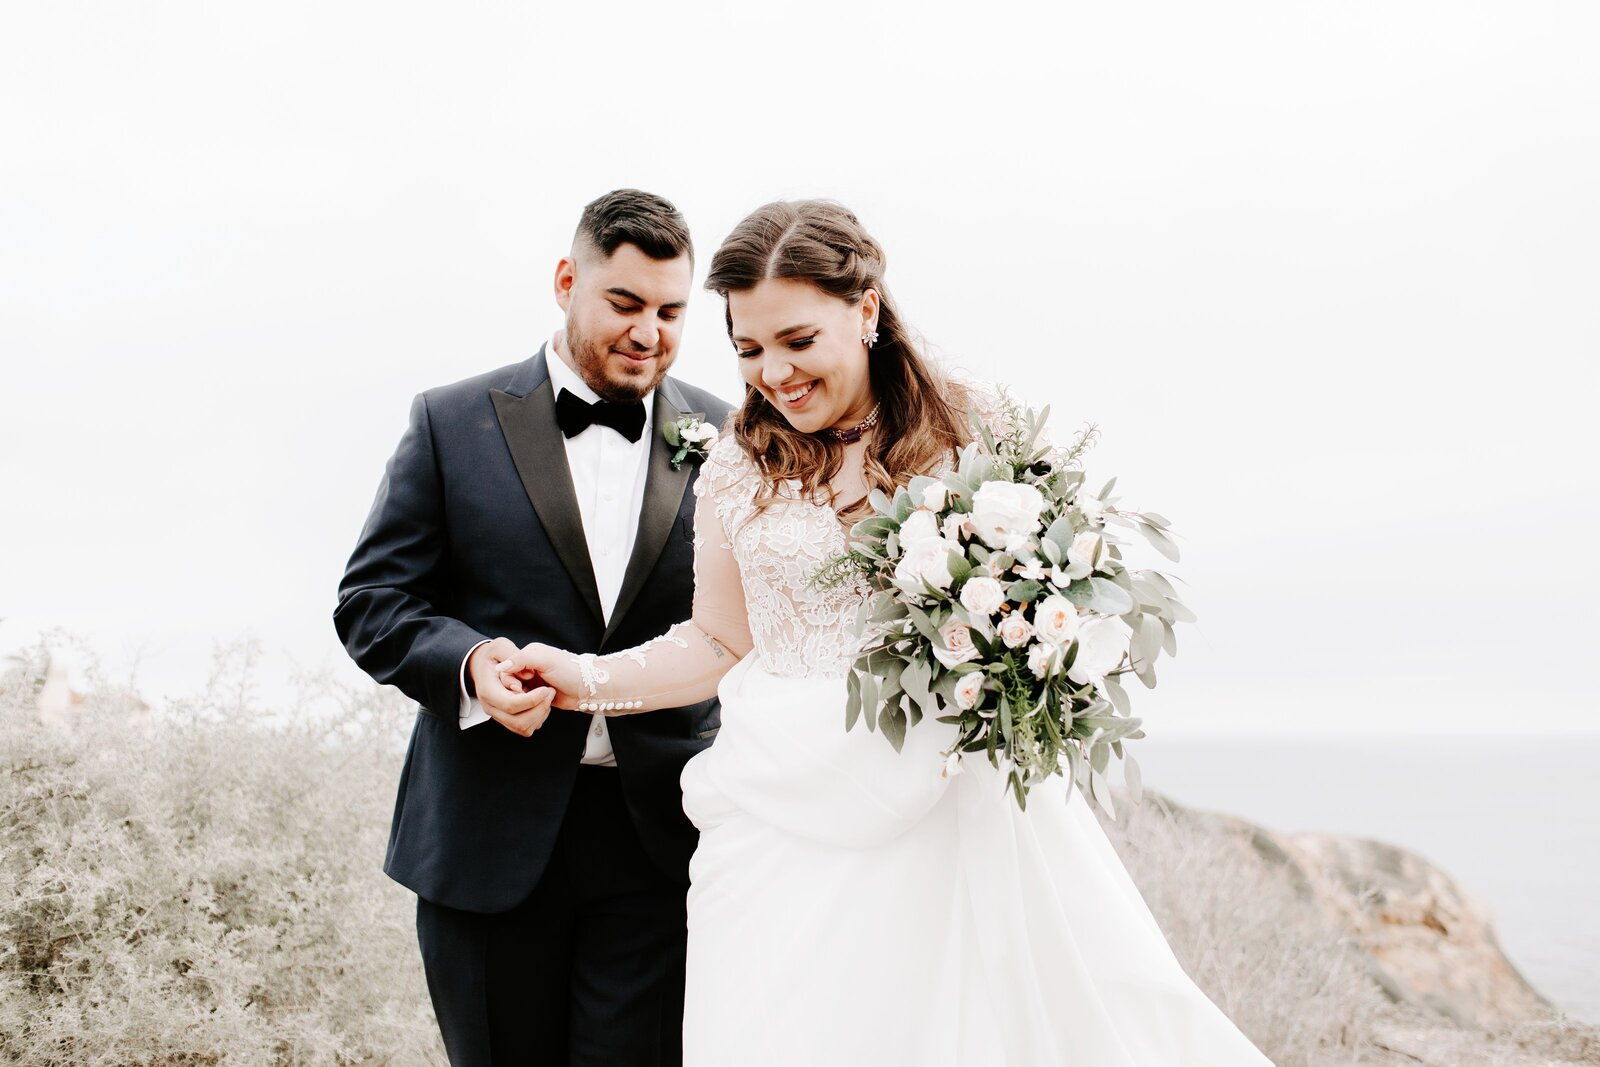 Bride-Groom-Palos-Verdes-Cliffs-Wedding